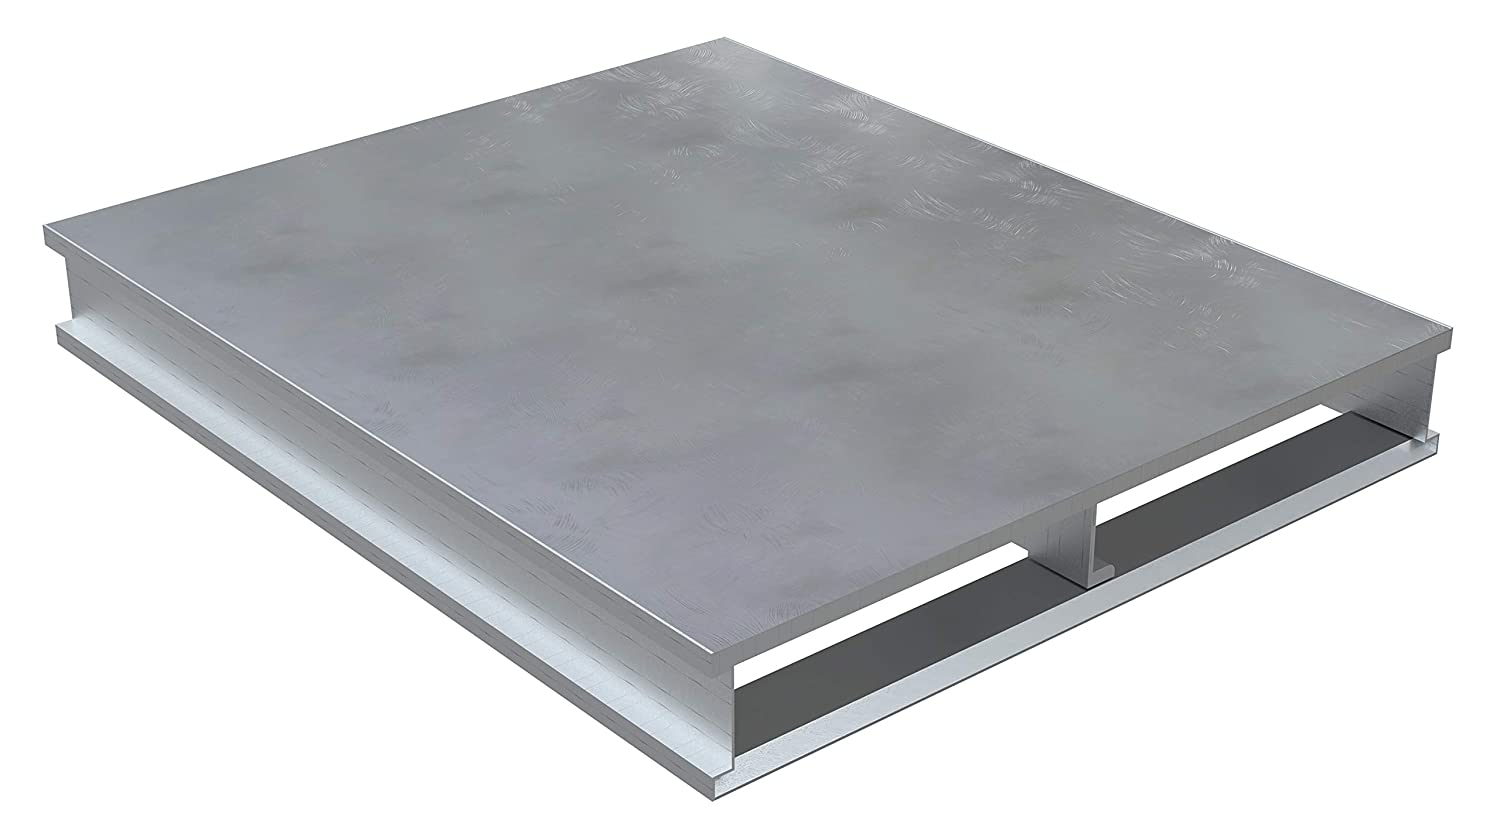 Vestil Heavy Duty Max 43% OFF Aluminum Solid Top 2021new shipping free 40X48 Pallet